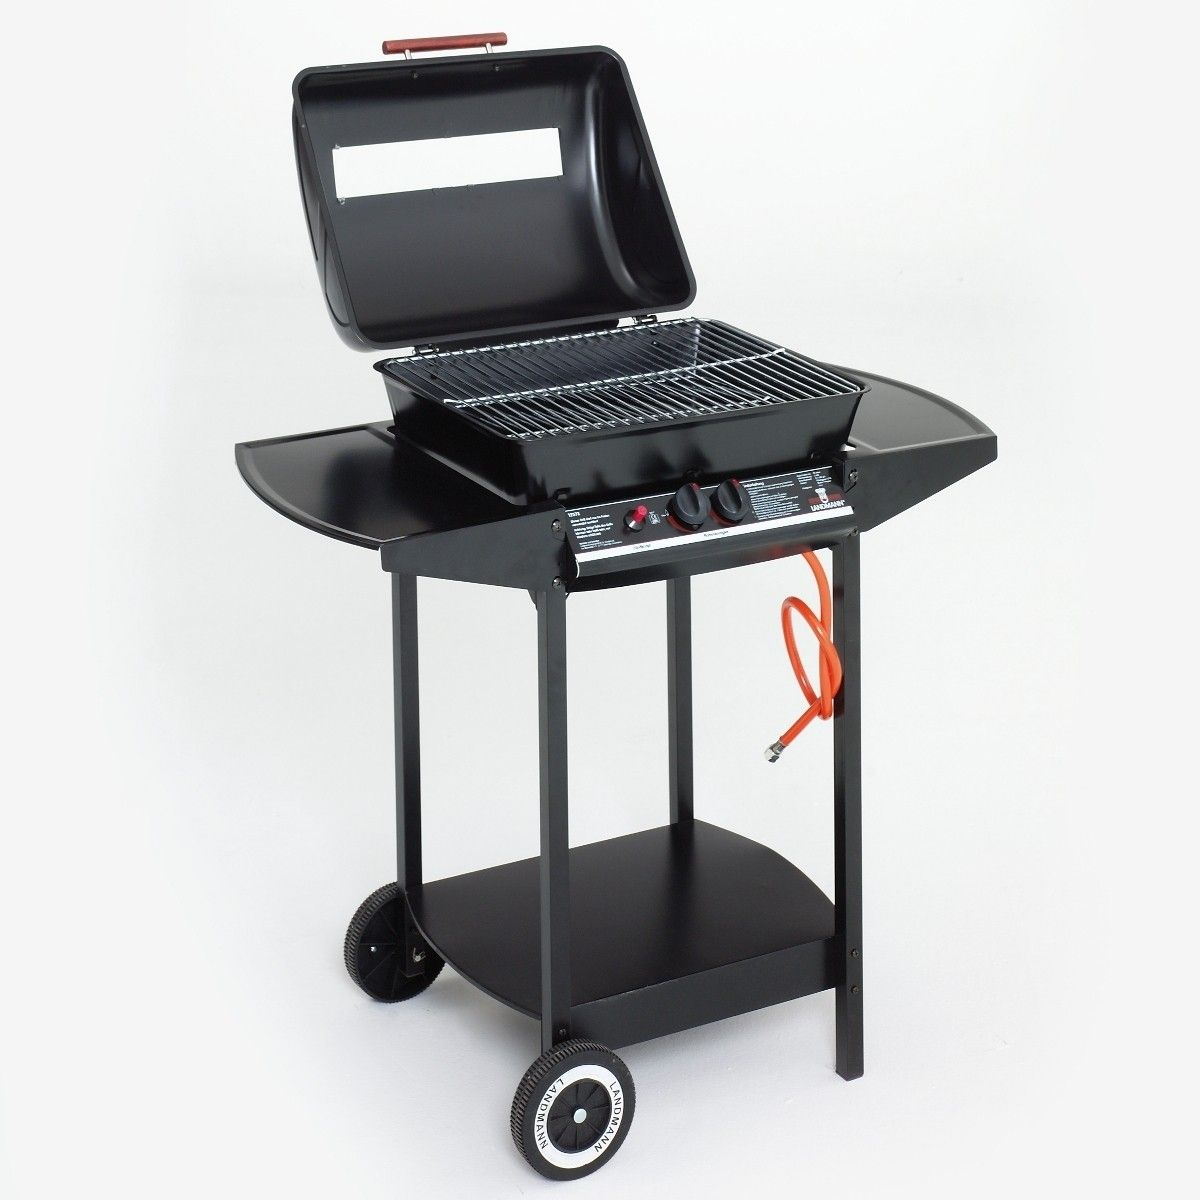 Landmann Gasgrill Portable Landmann Chef 2 Burner Lava Rock Gas Wagon Bbq Grill With